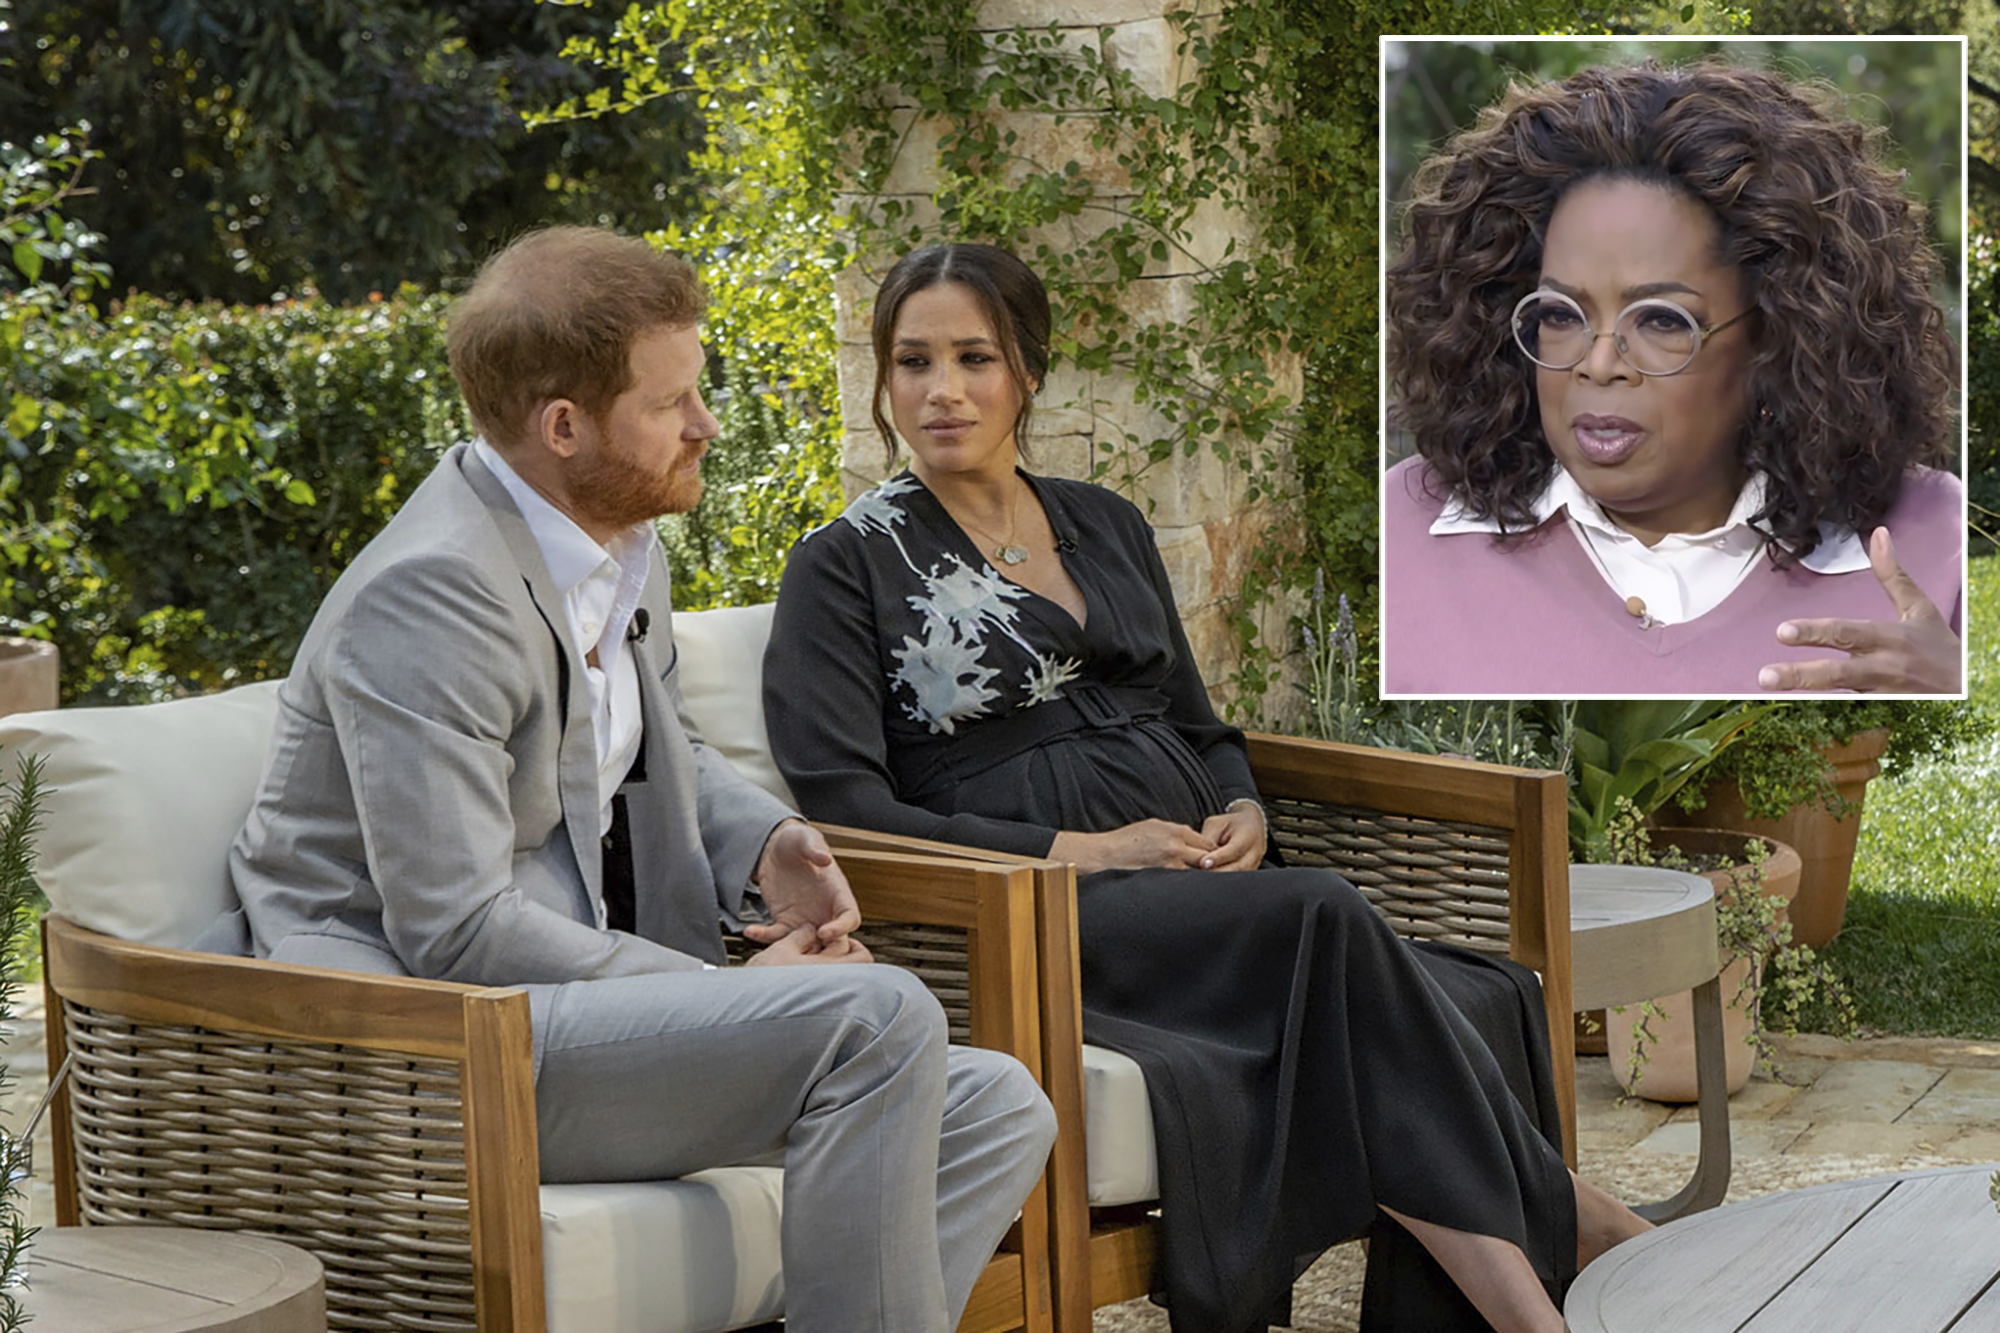 Meghan drops race bombshell in Oprah TV interview... discusses feeling suicidal